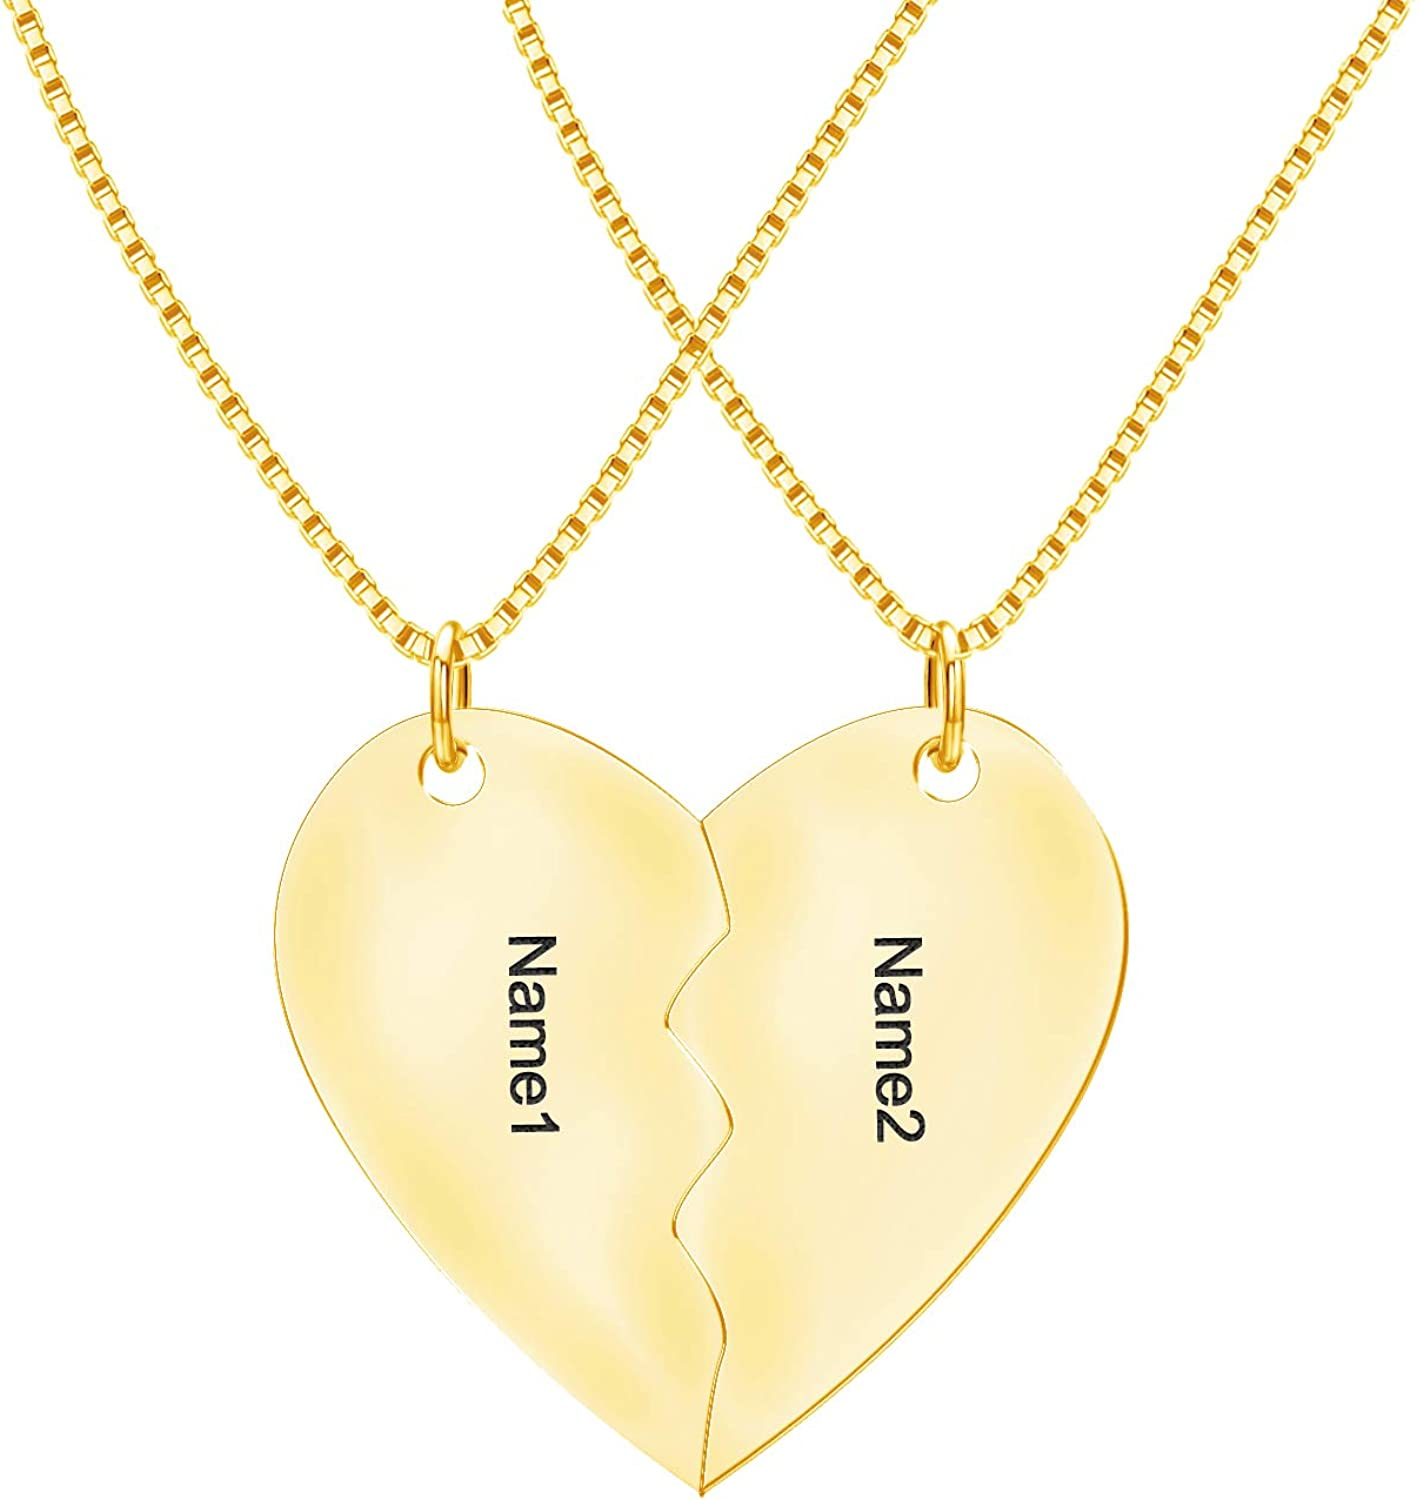 Personalized Broken Heart Necklace 18k Gold plated or Sterling Silver initial Necklace Monogram Necklace personalized gift engraved